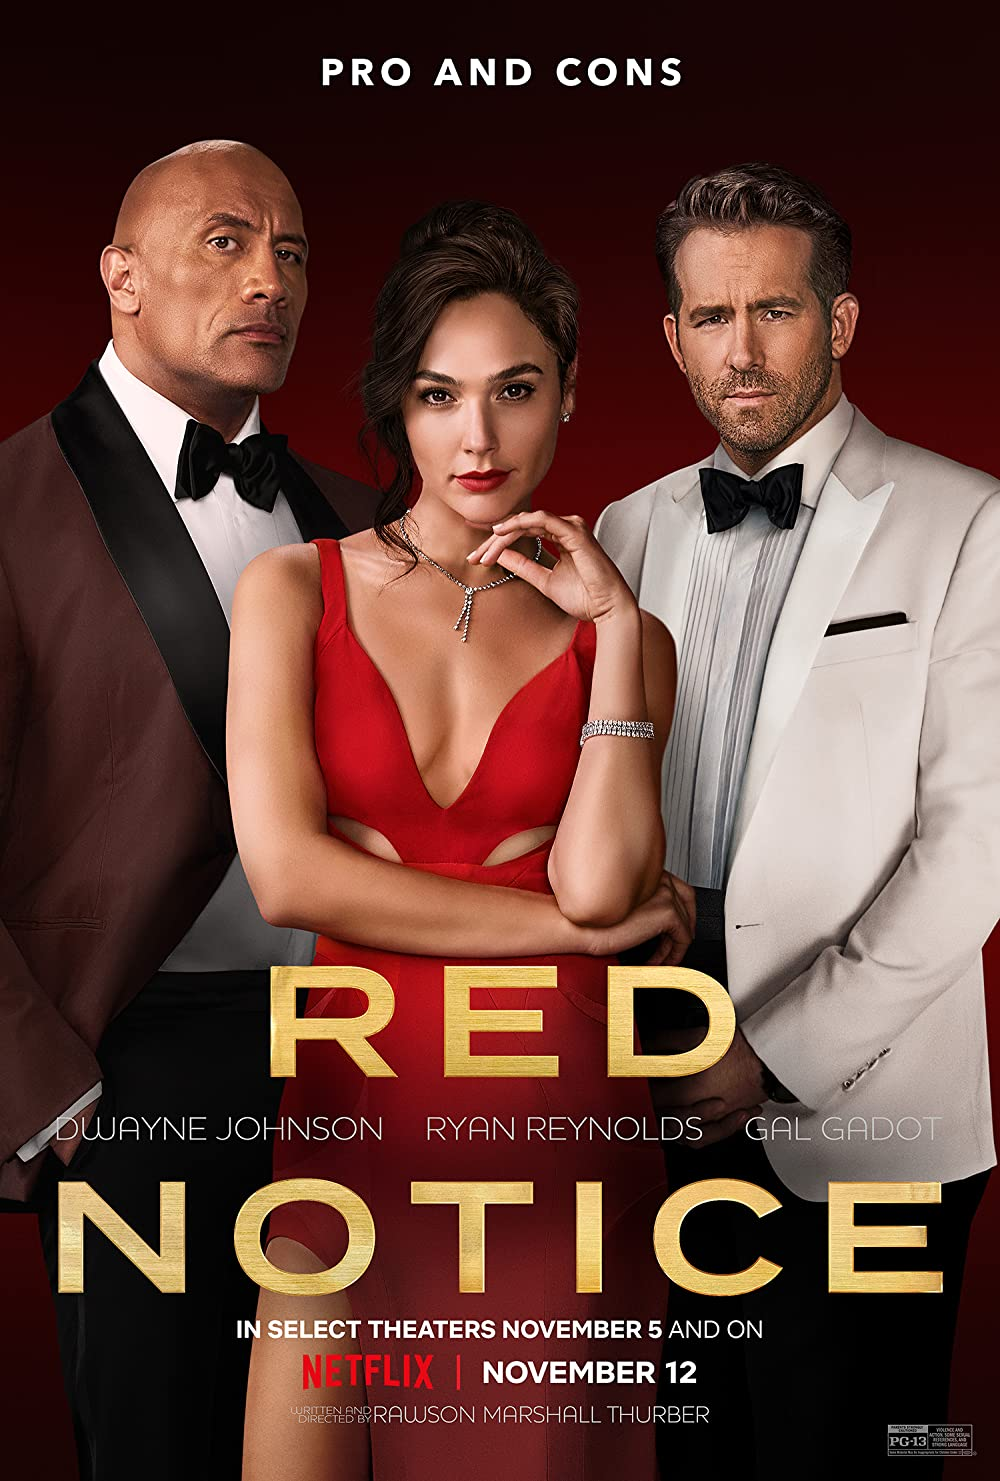 RED NOTICE 2021 Hindi Dubbed Official Trailer NetFlix Movie 1080p HDRip Download